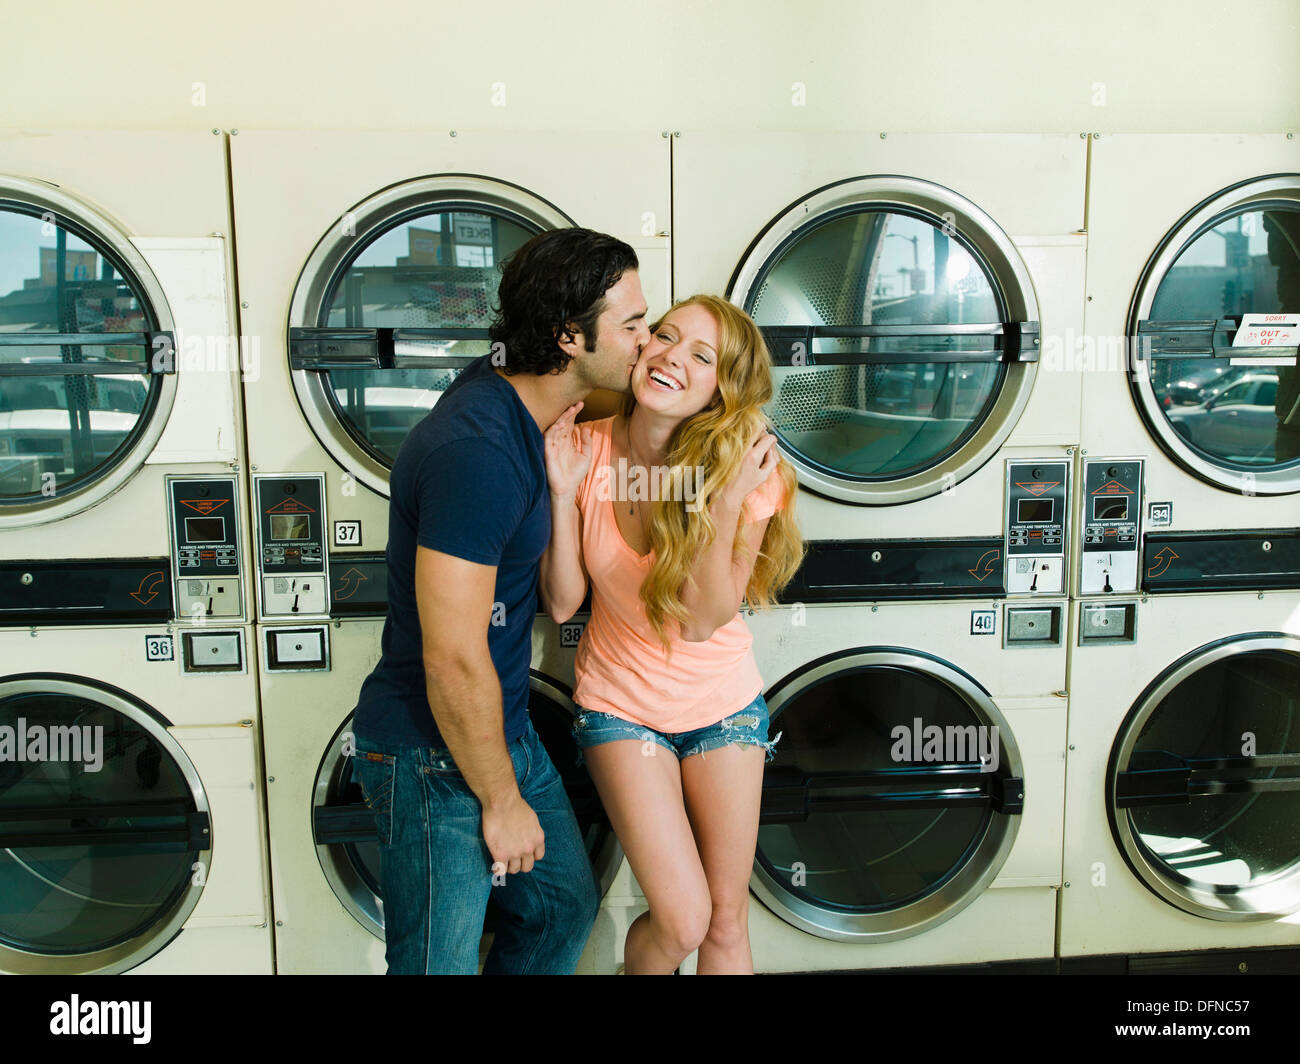 A young man kisses on the chick of a pretty woman in San Diego coin laundromat. Stock Photo